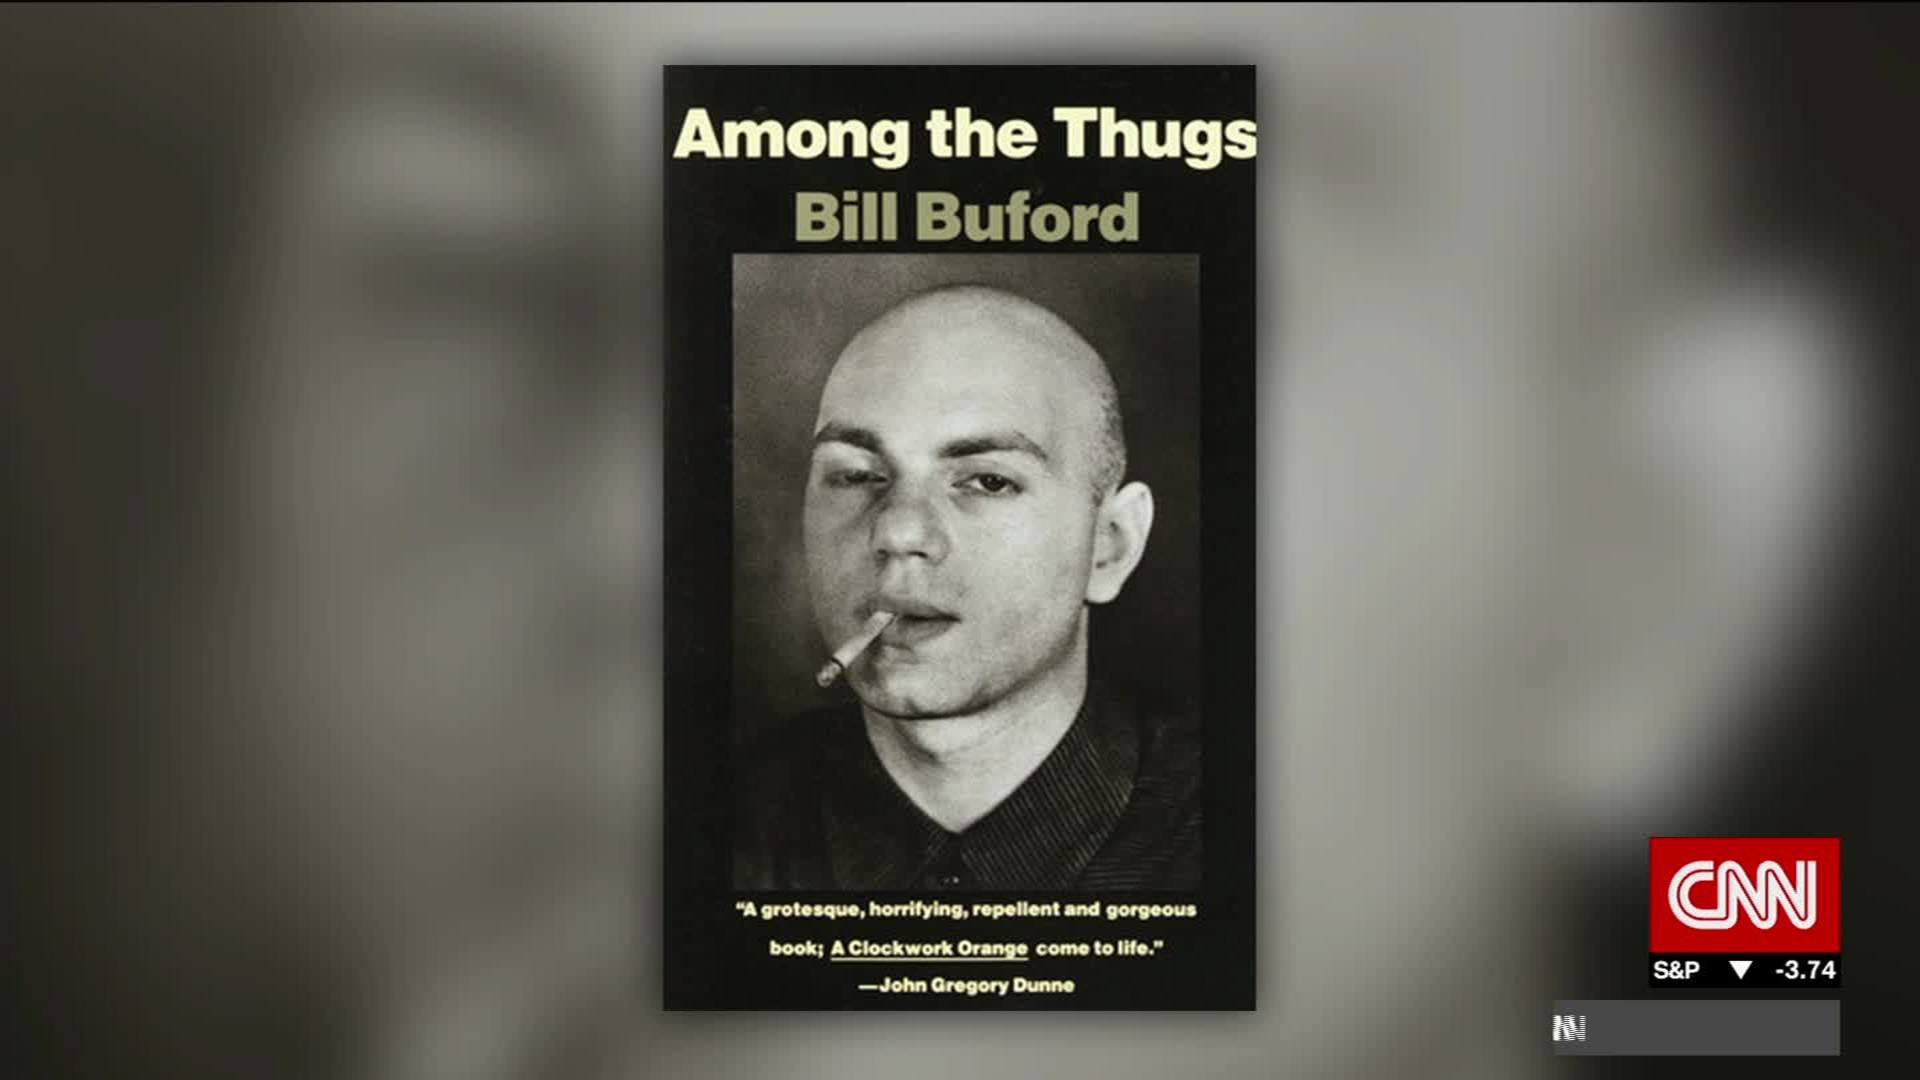 AMONG THE THUGS BILL BUFORD DOWNLOAD